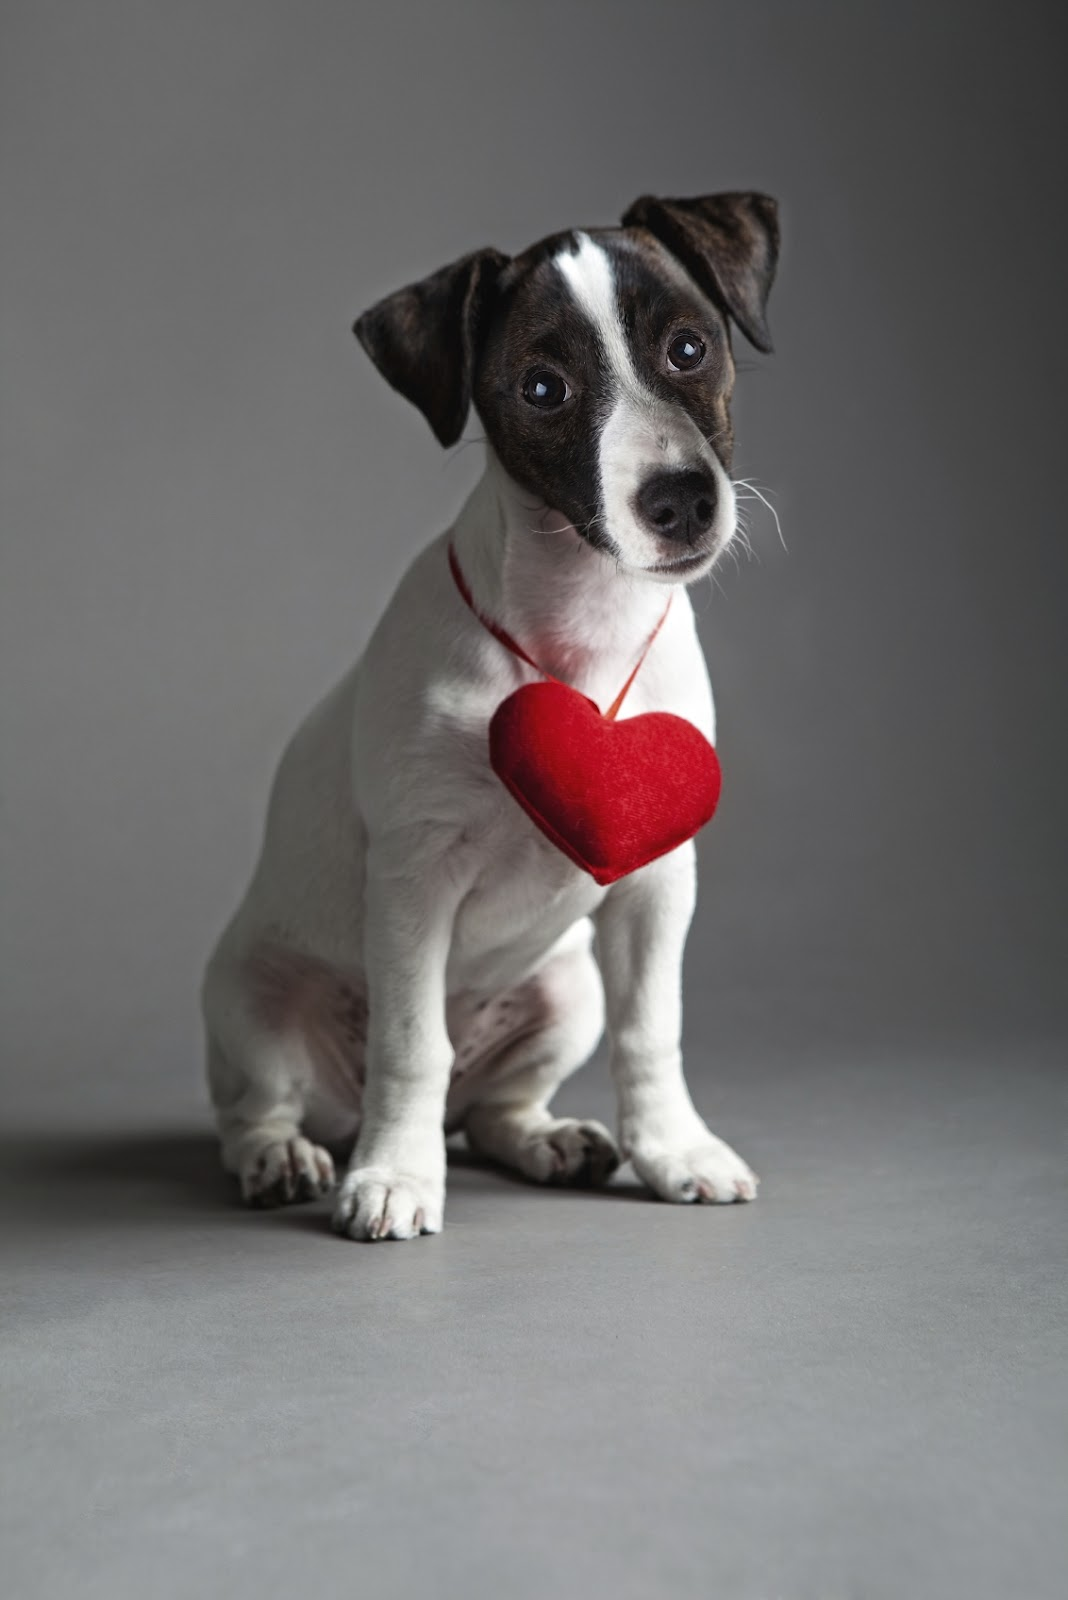 Jack Russell Terrier with heart wallpaper